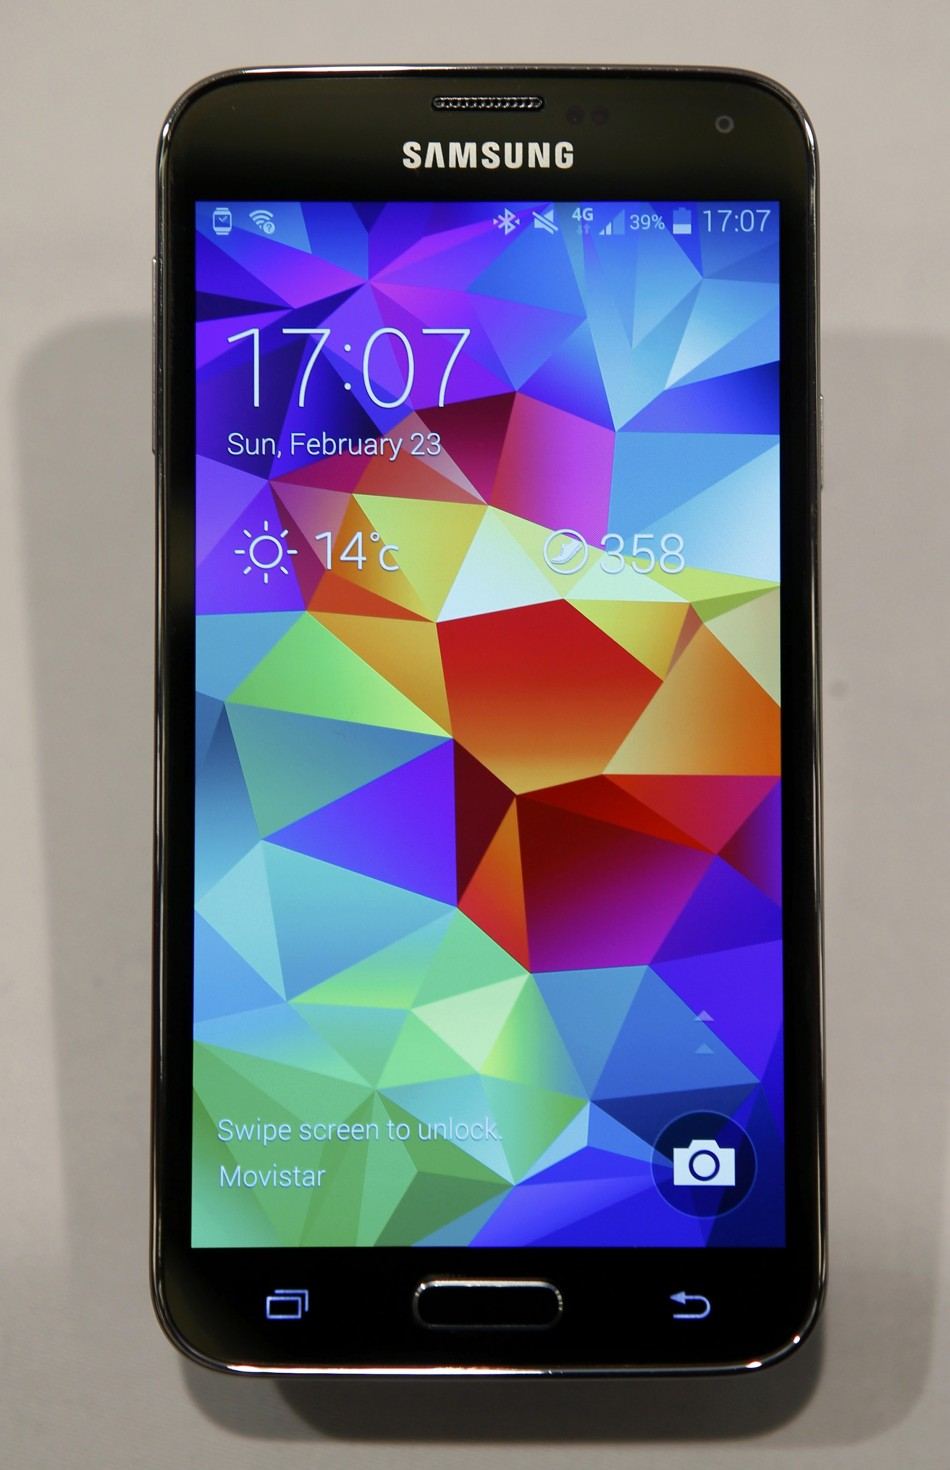 Samsung Galaxy S5 India Price Revealed Ahead Of 11 April